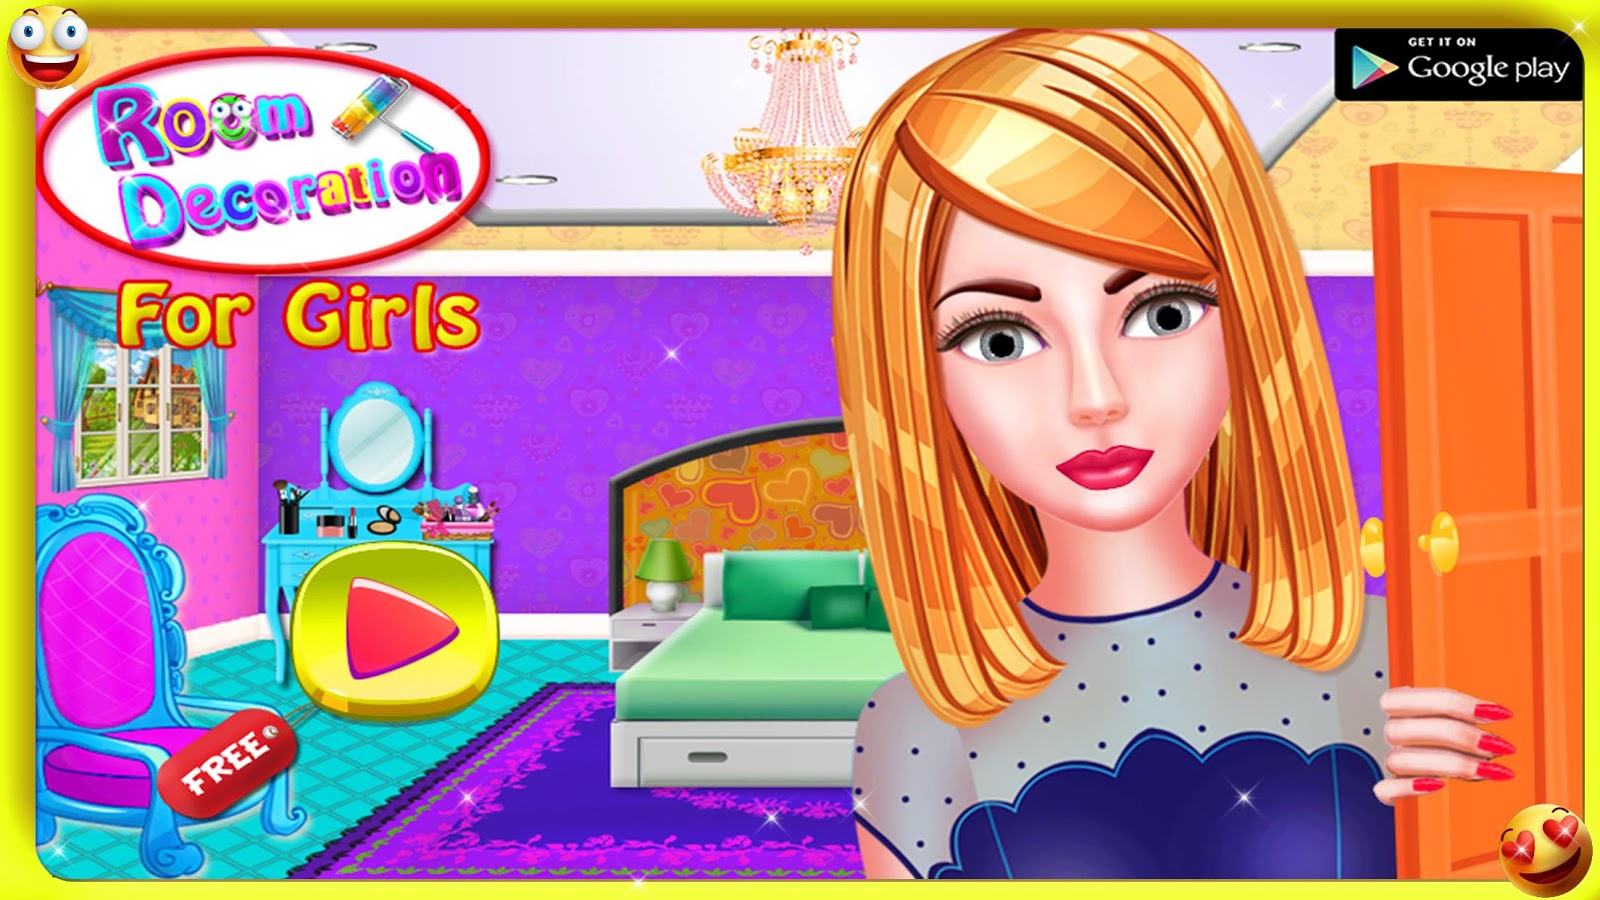 room decoration girls games - android apps on google play